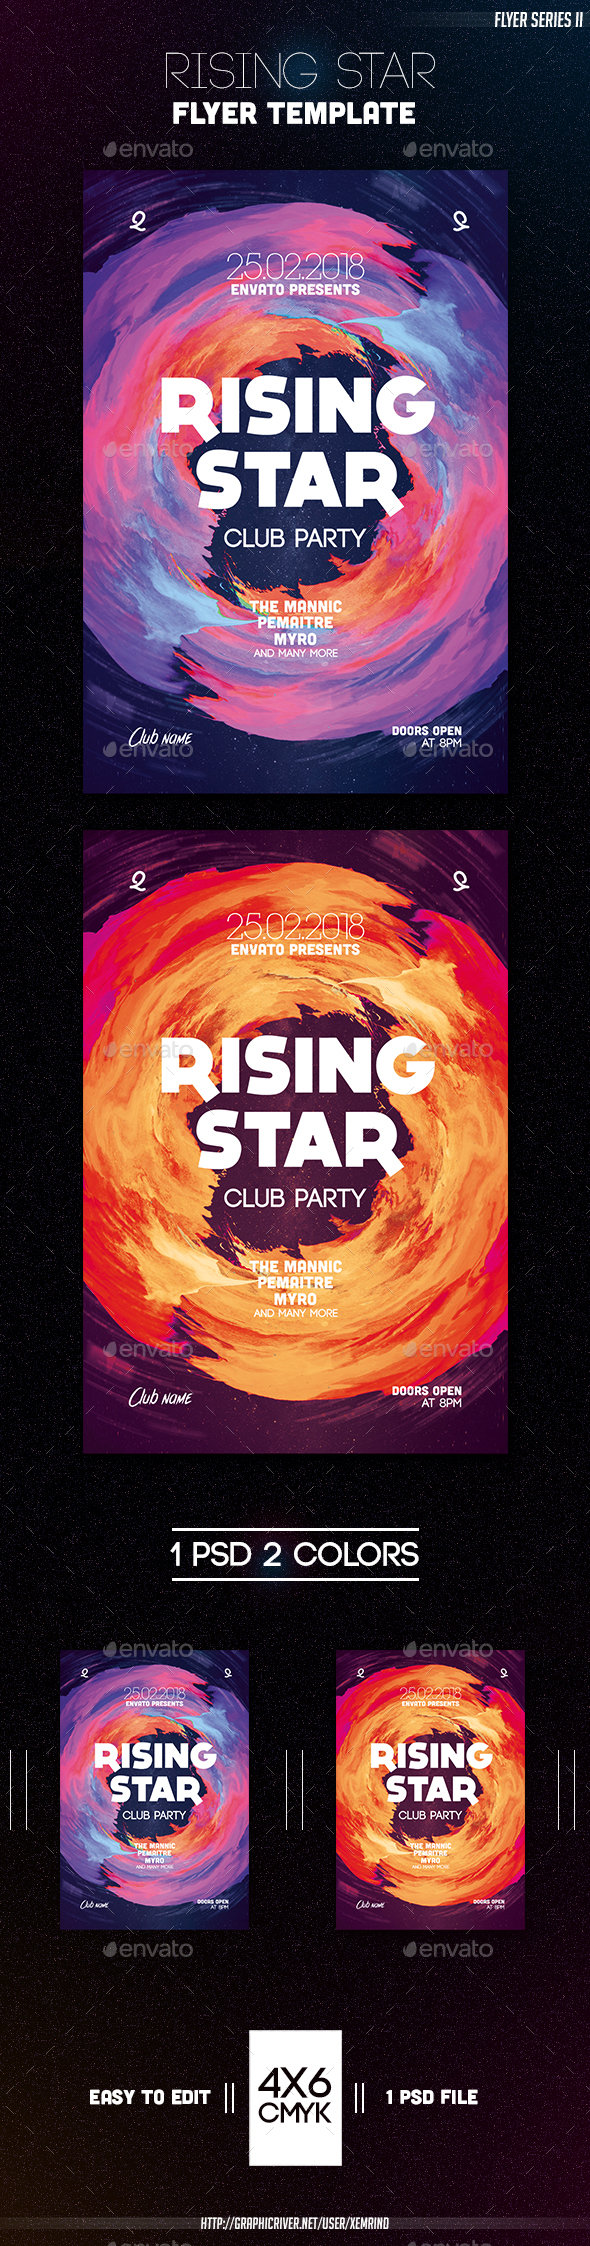 Rising Star Flyer Template - Clubs & Parties Events